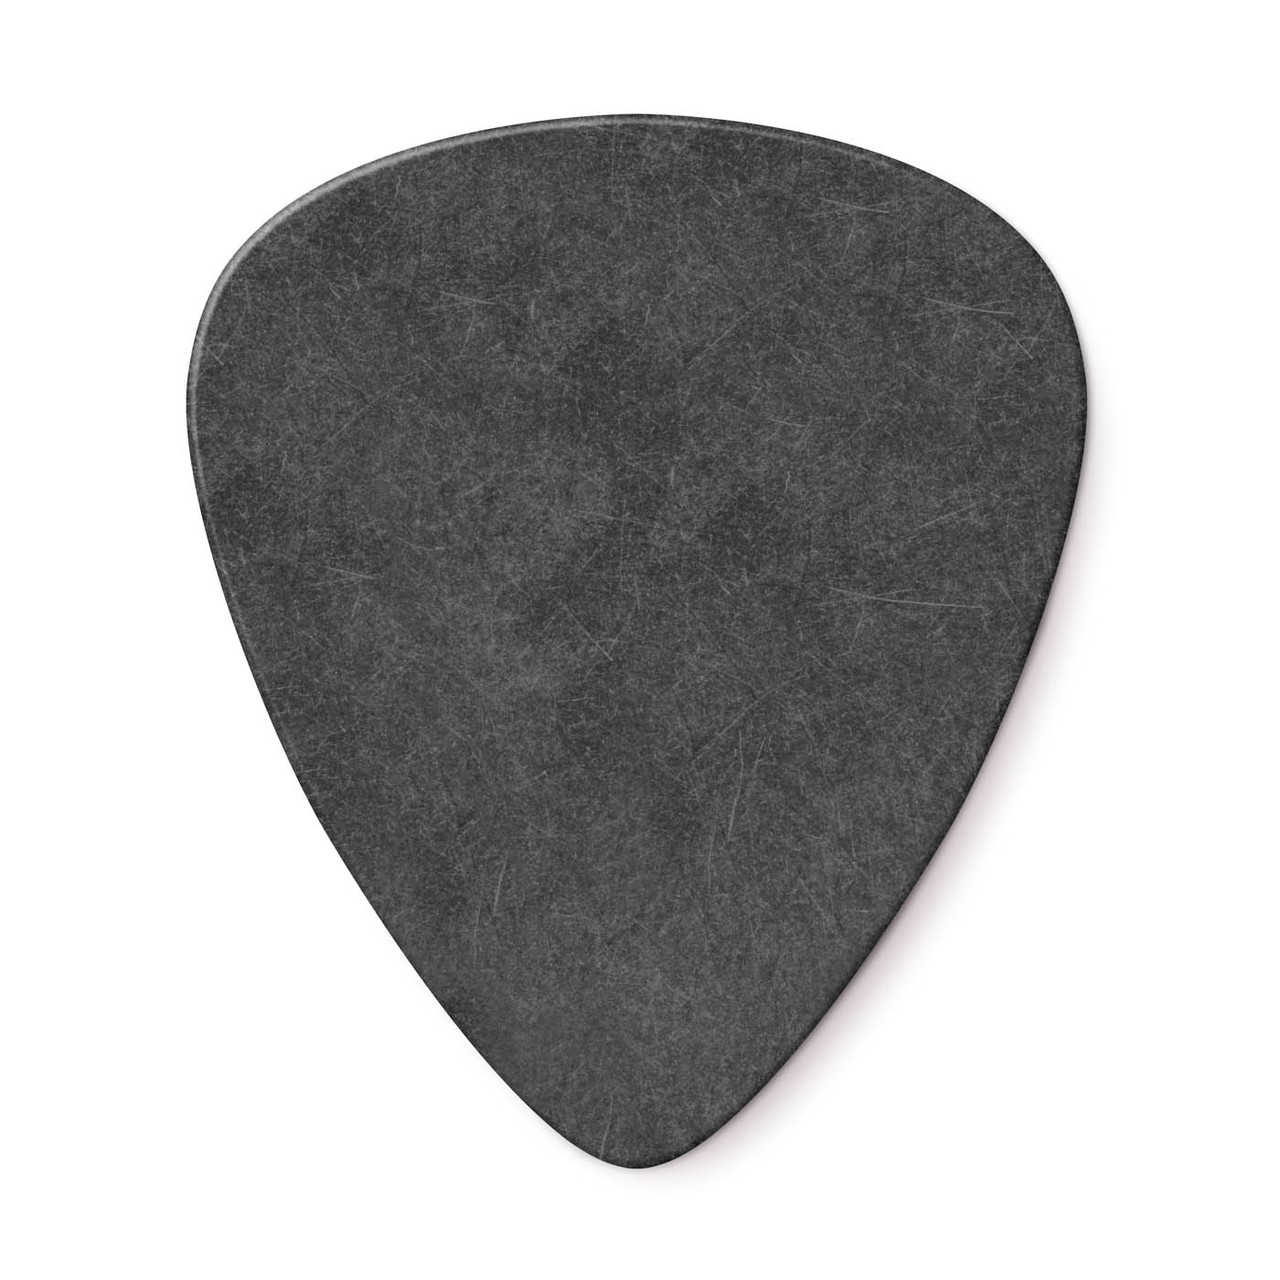 Dunlop Guitar Picks  72 Pack  Tortex Pitch Black Standard  .88mm  488R.88